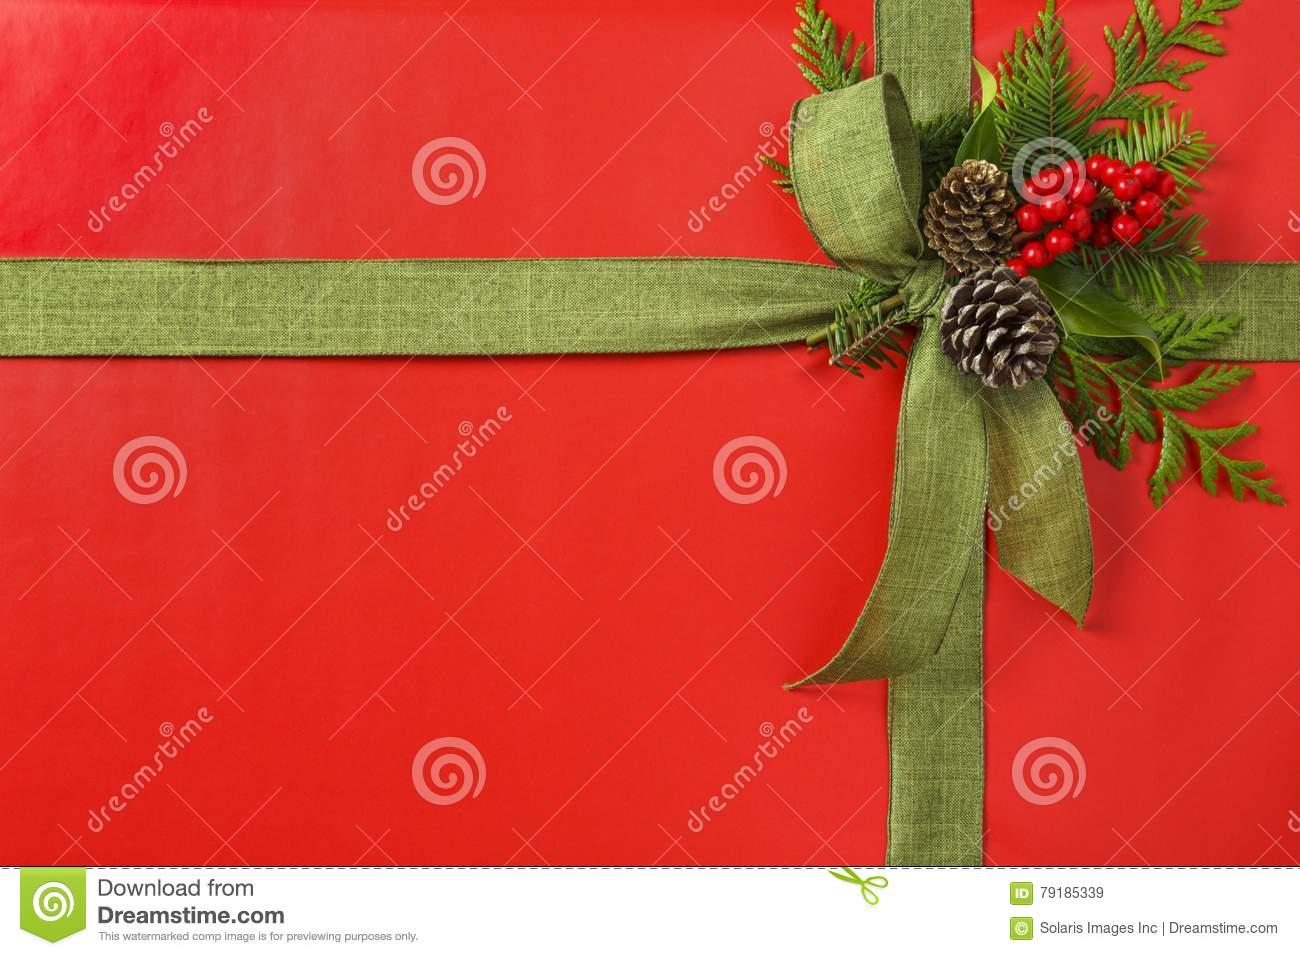 Beautiful red and green Christmas gift present with fabric ribbon bow and botanical decorations. Horizontal background border.